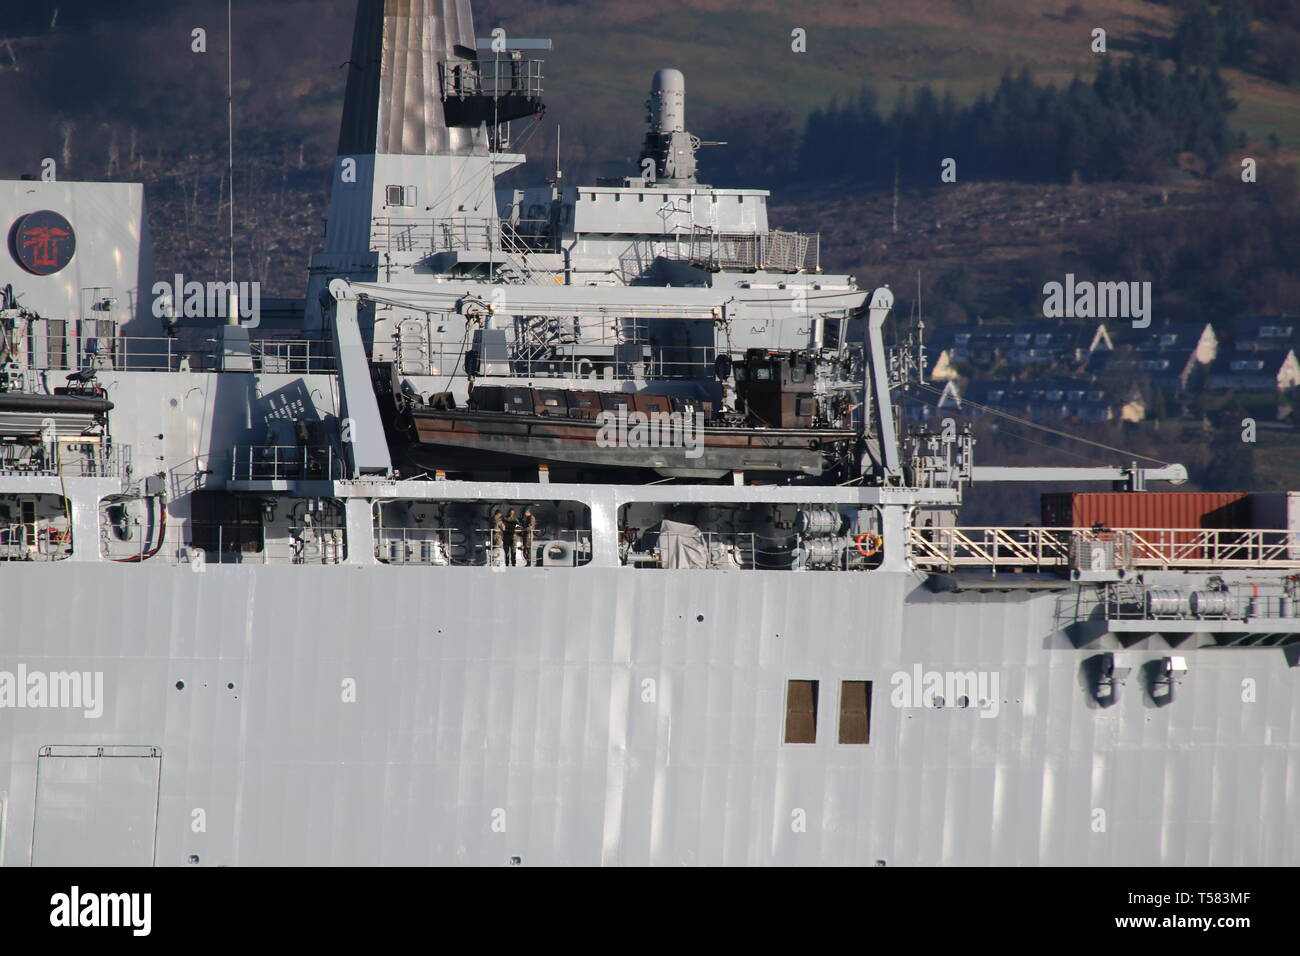 One of four LCVP Mk5 landing craft carried on board HMS Albion (L14), an Albion-class landing platform dock operated by the Royal Navy. Stock Photo